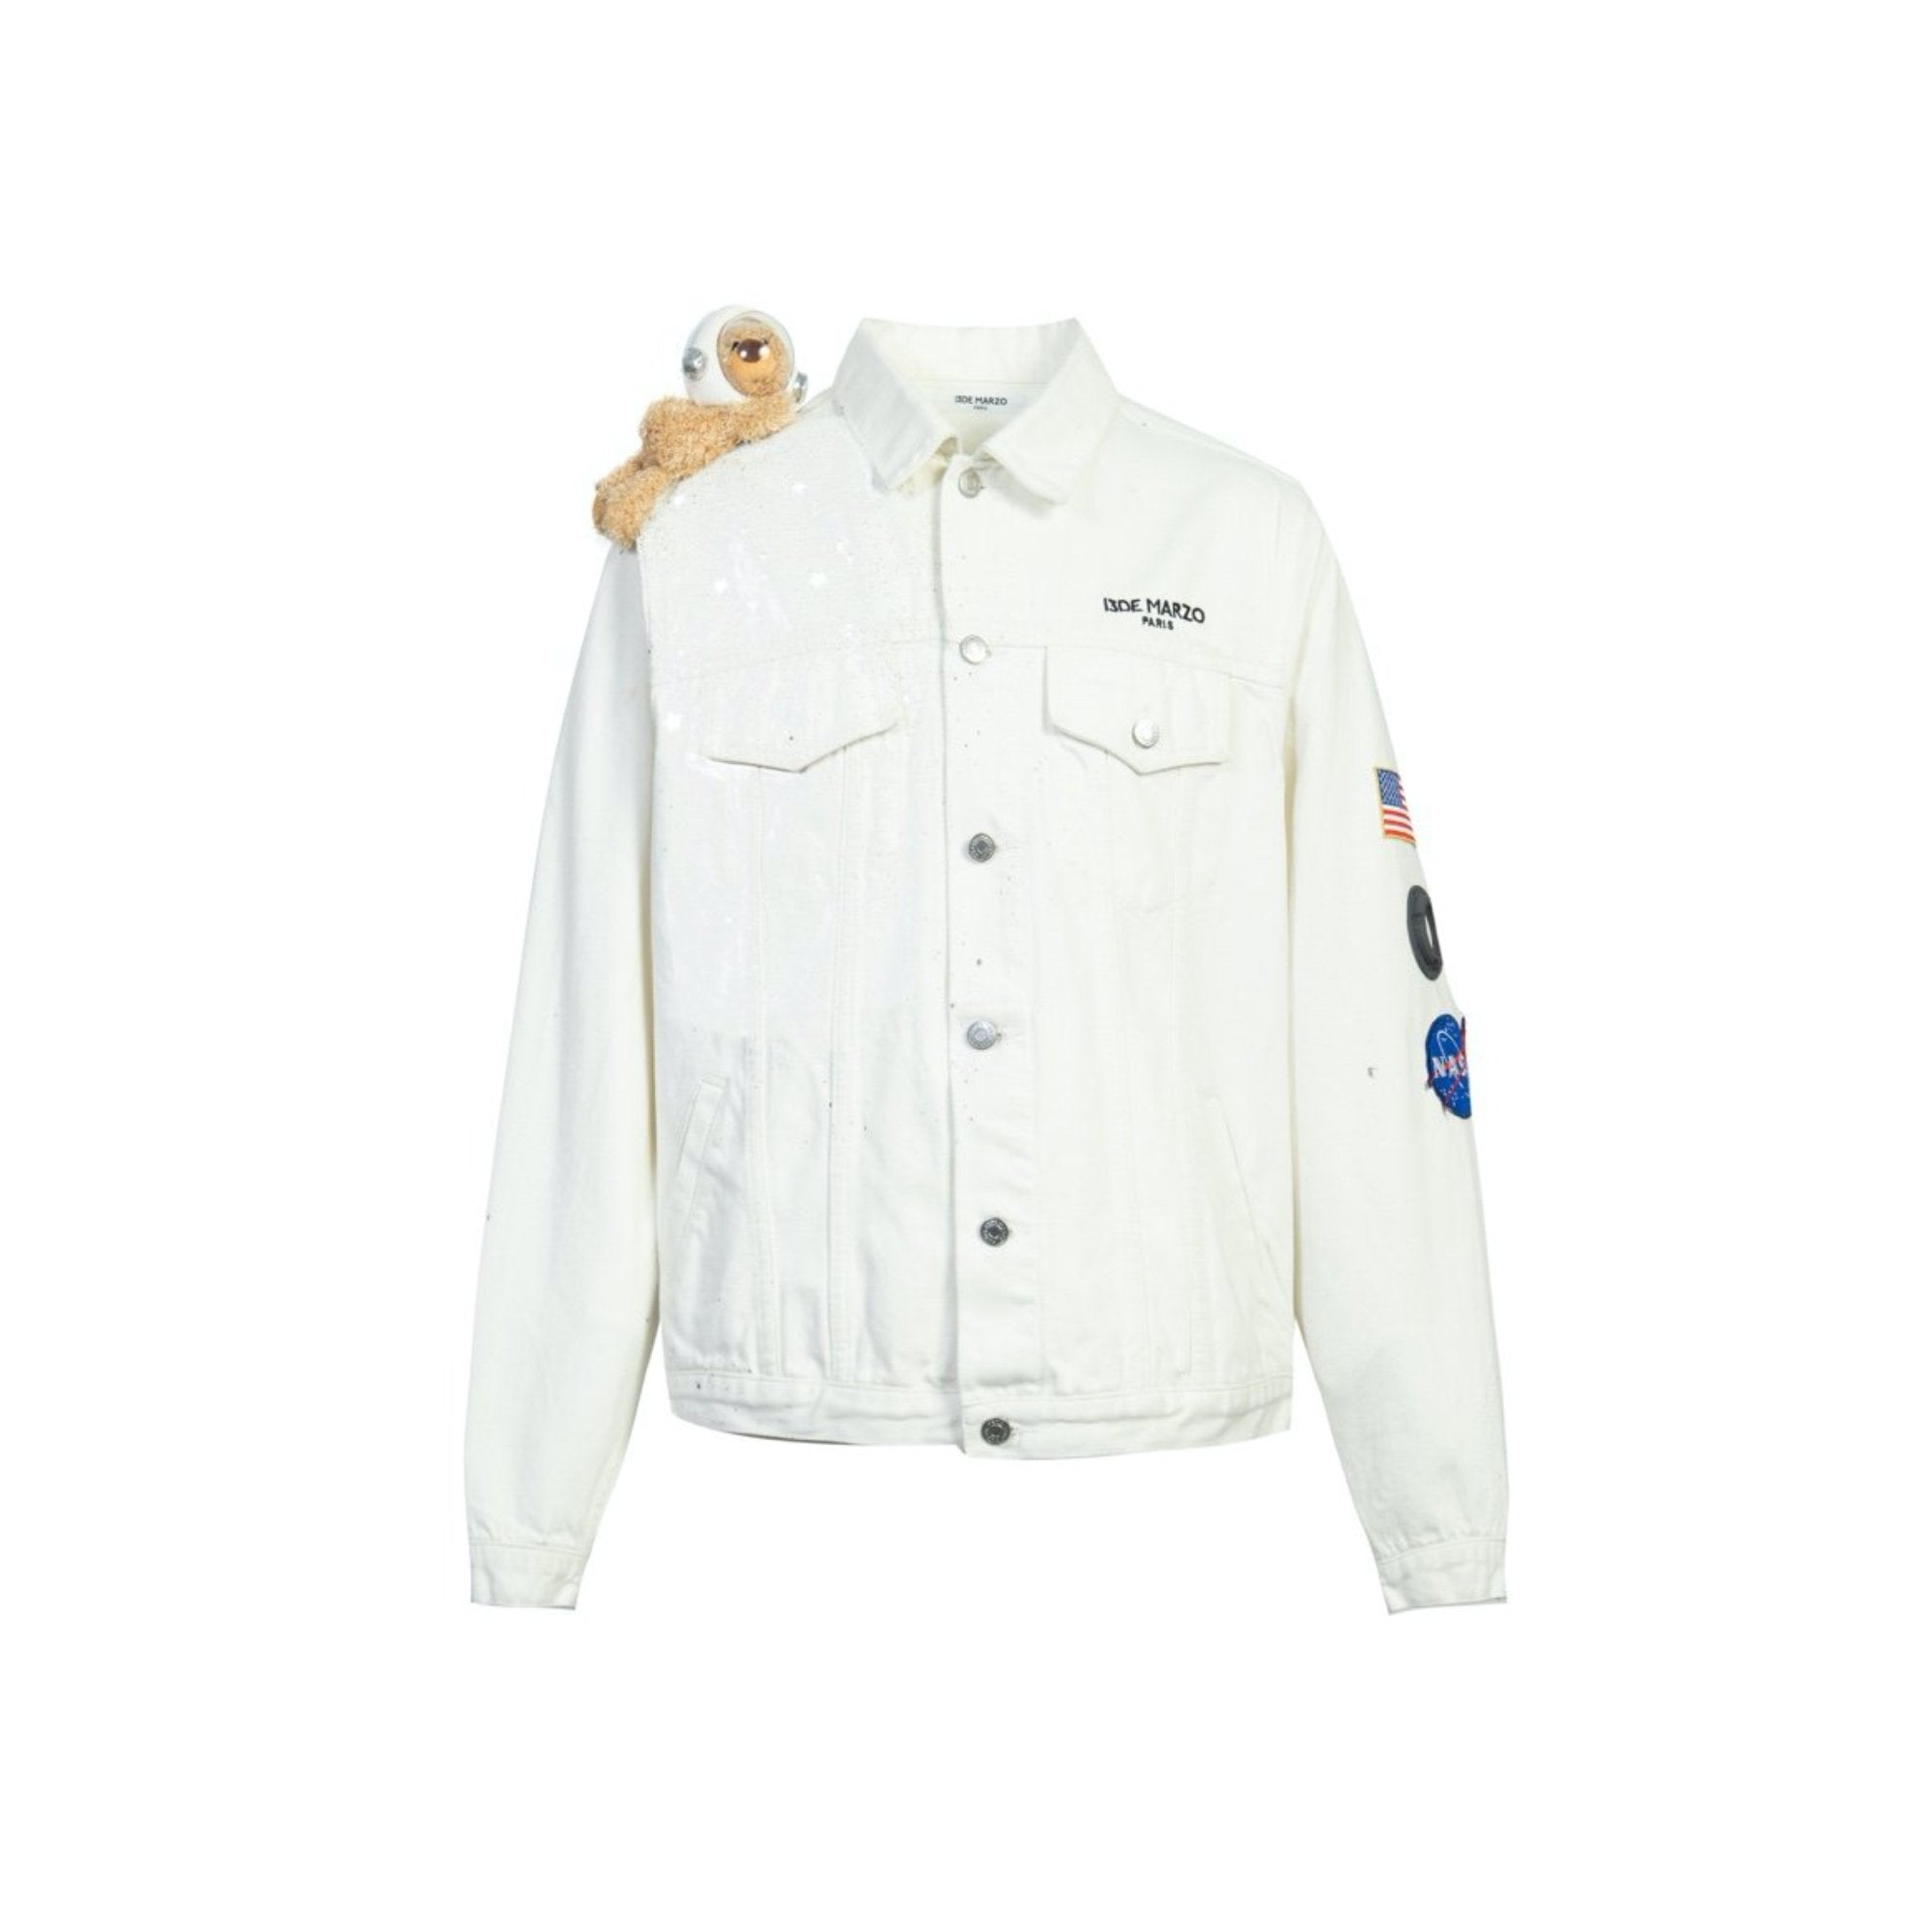 13 DE MARZO Astronaut Shoulder Teddy Bear Denim Jacket White | MADA IN CHINA